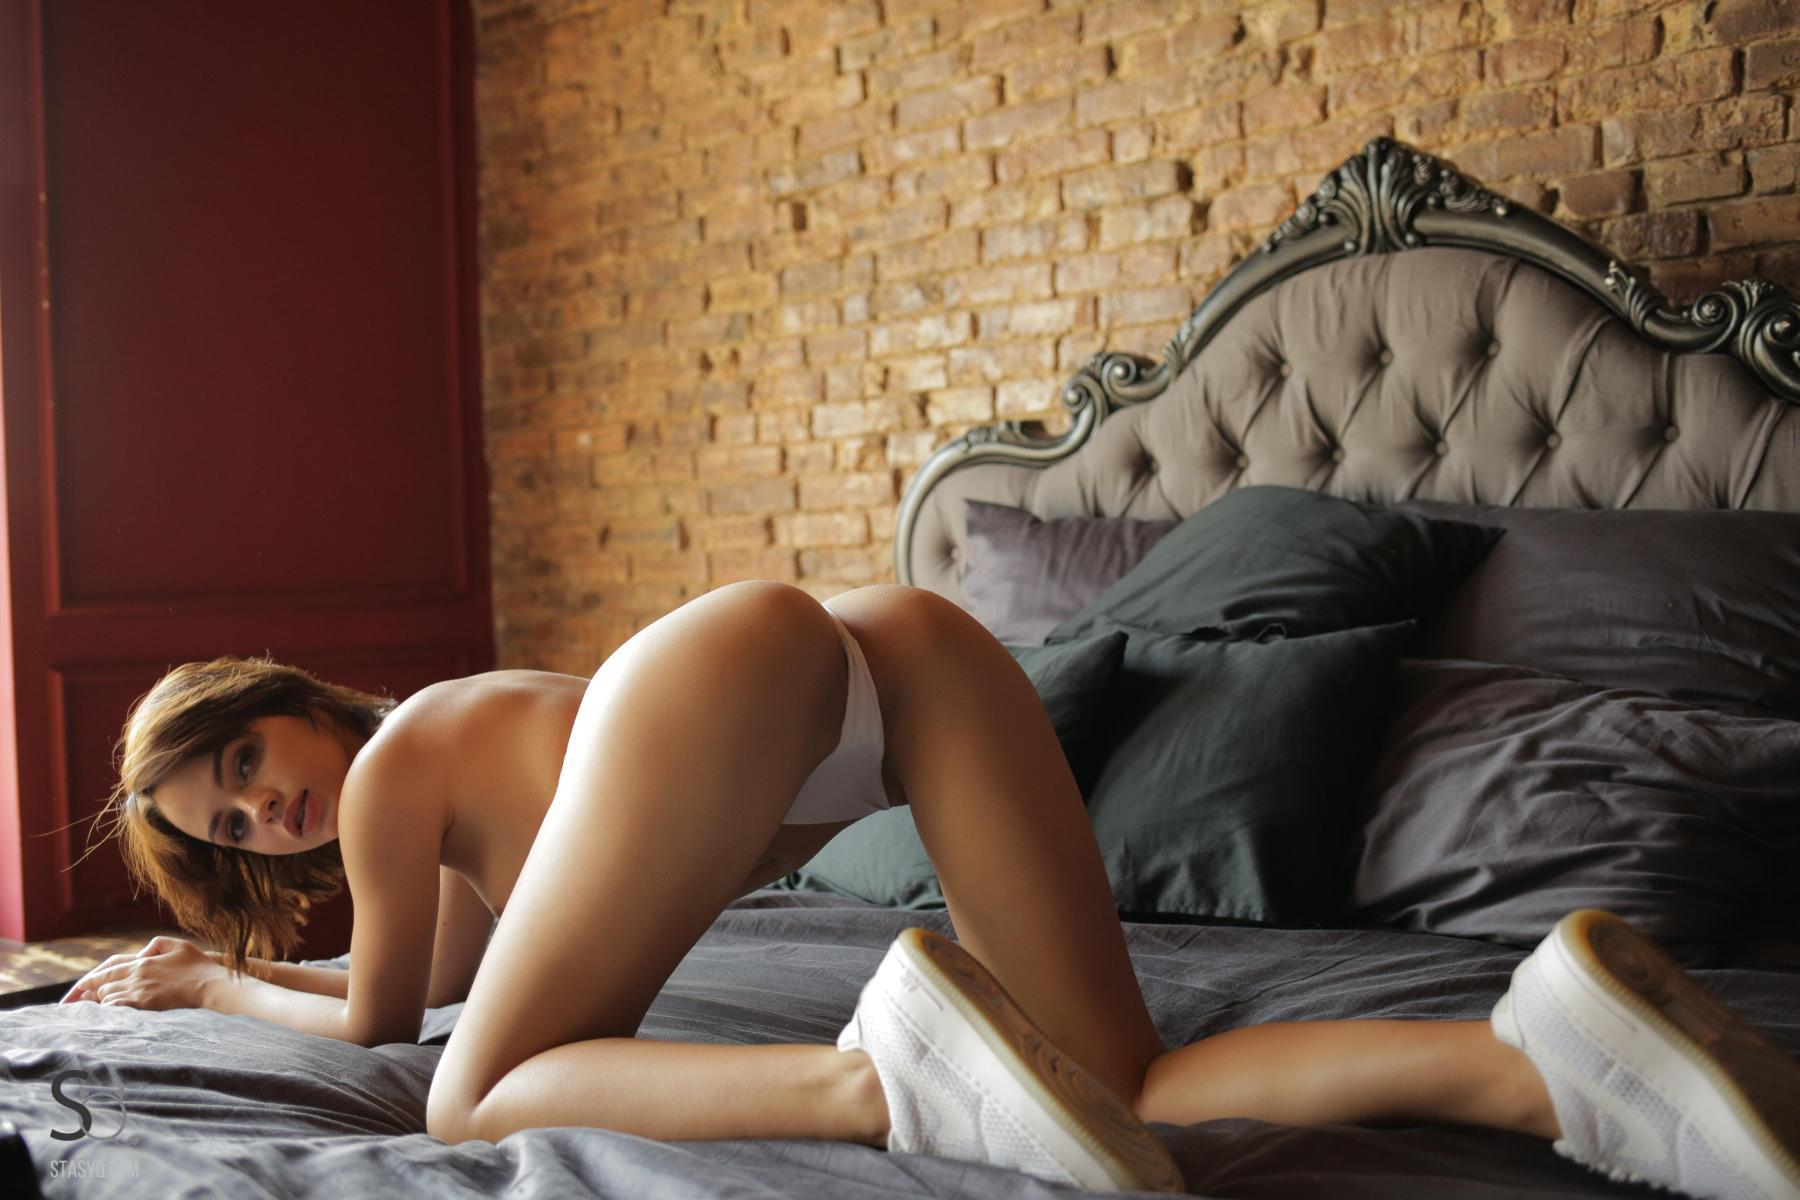 NatellaQ kneels on the bed with a nice view of her ass -StasyQ